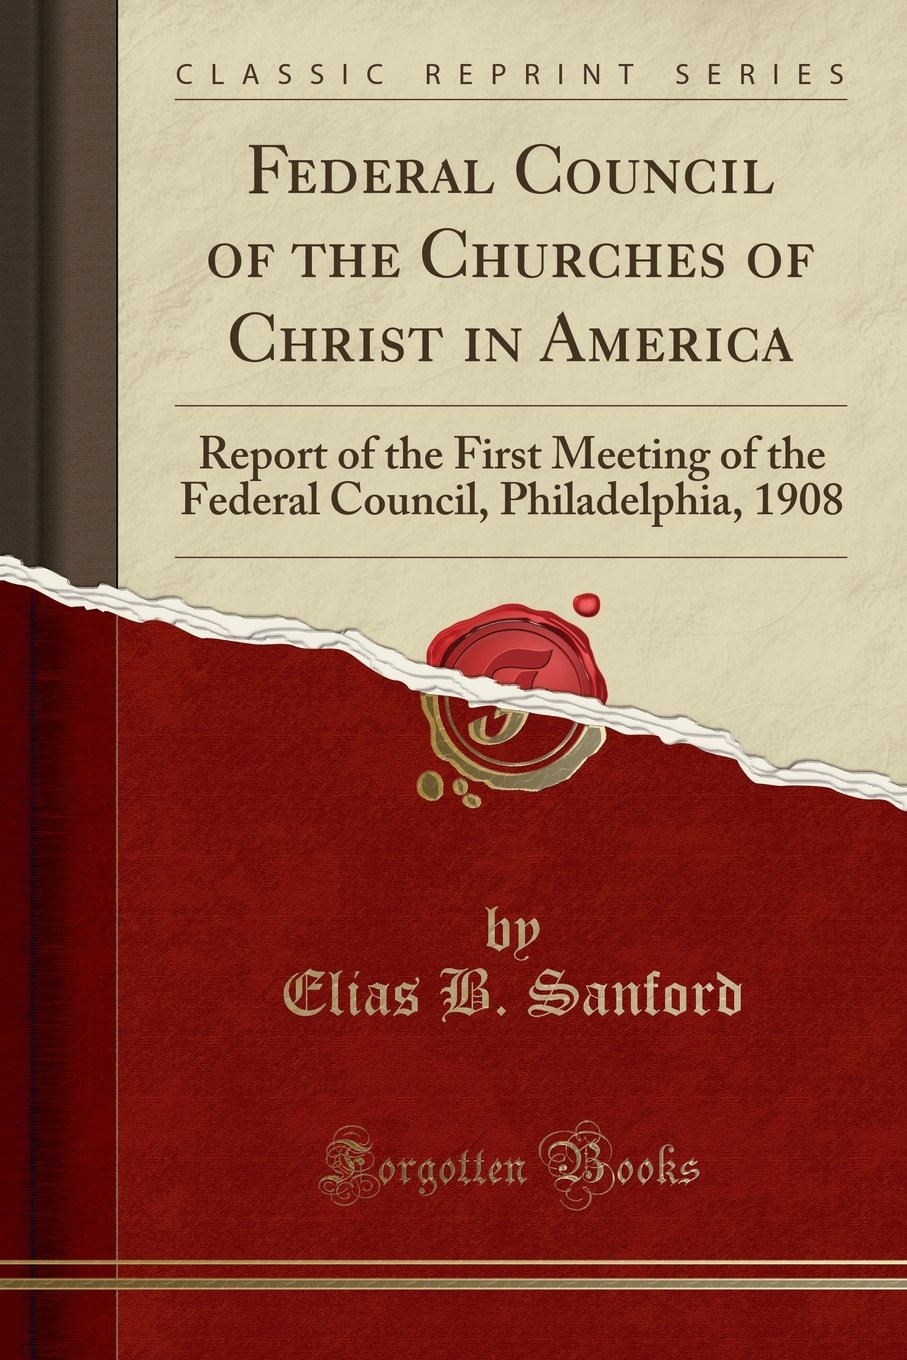 Federal Council of the Churches of Christ in America: Report of the First Meeting of the Federal Council, Philadelphia, 1908 (Classic Reprint) pdf epub